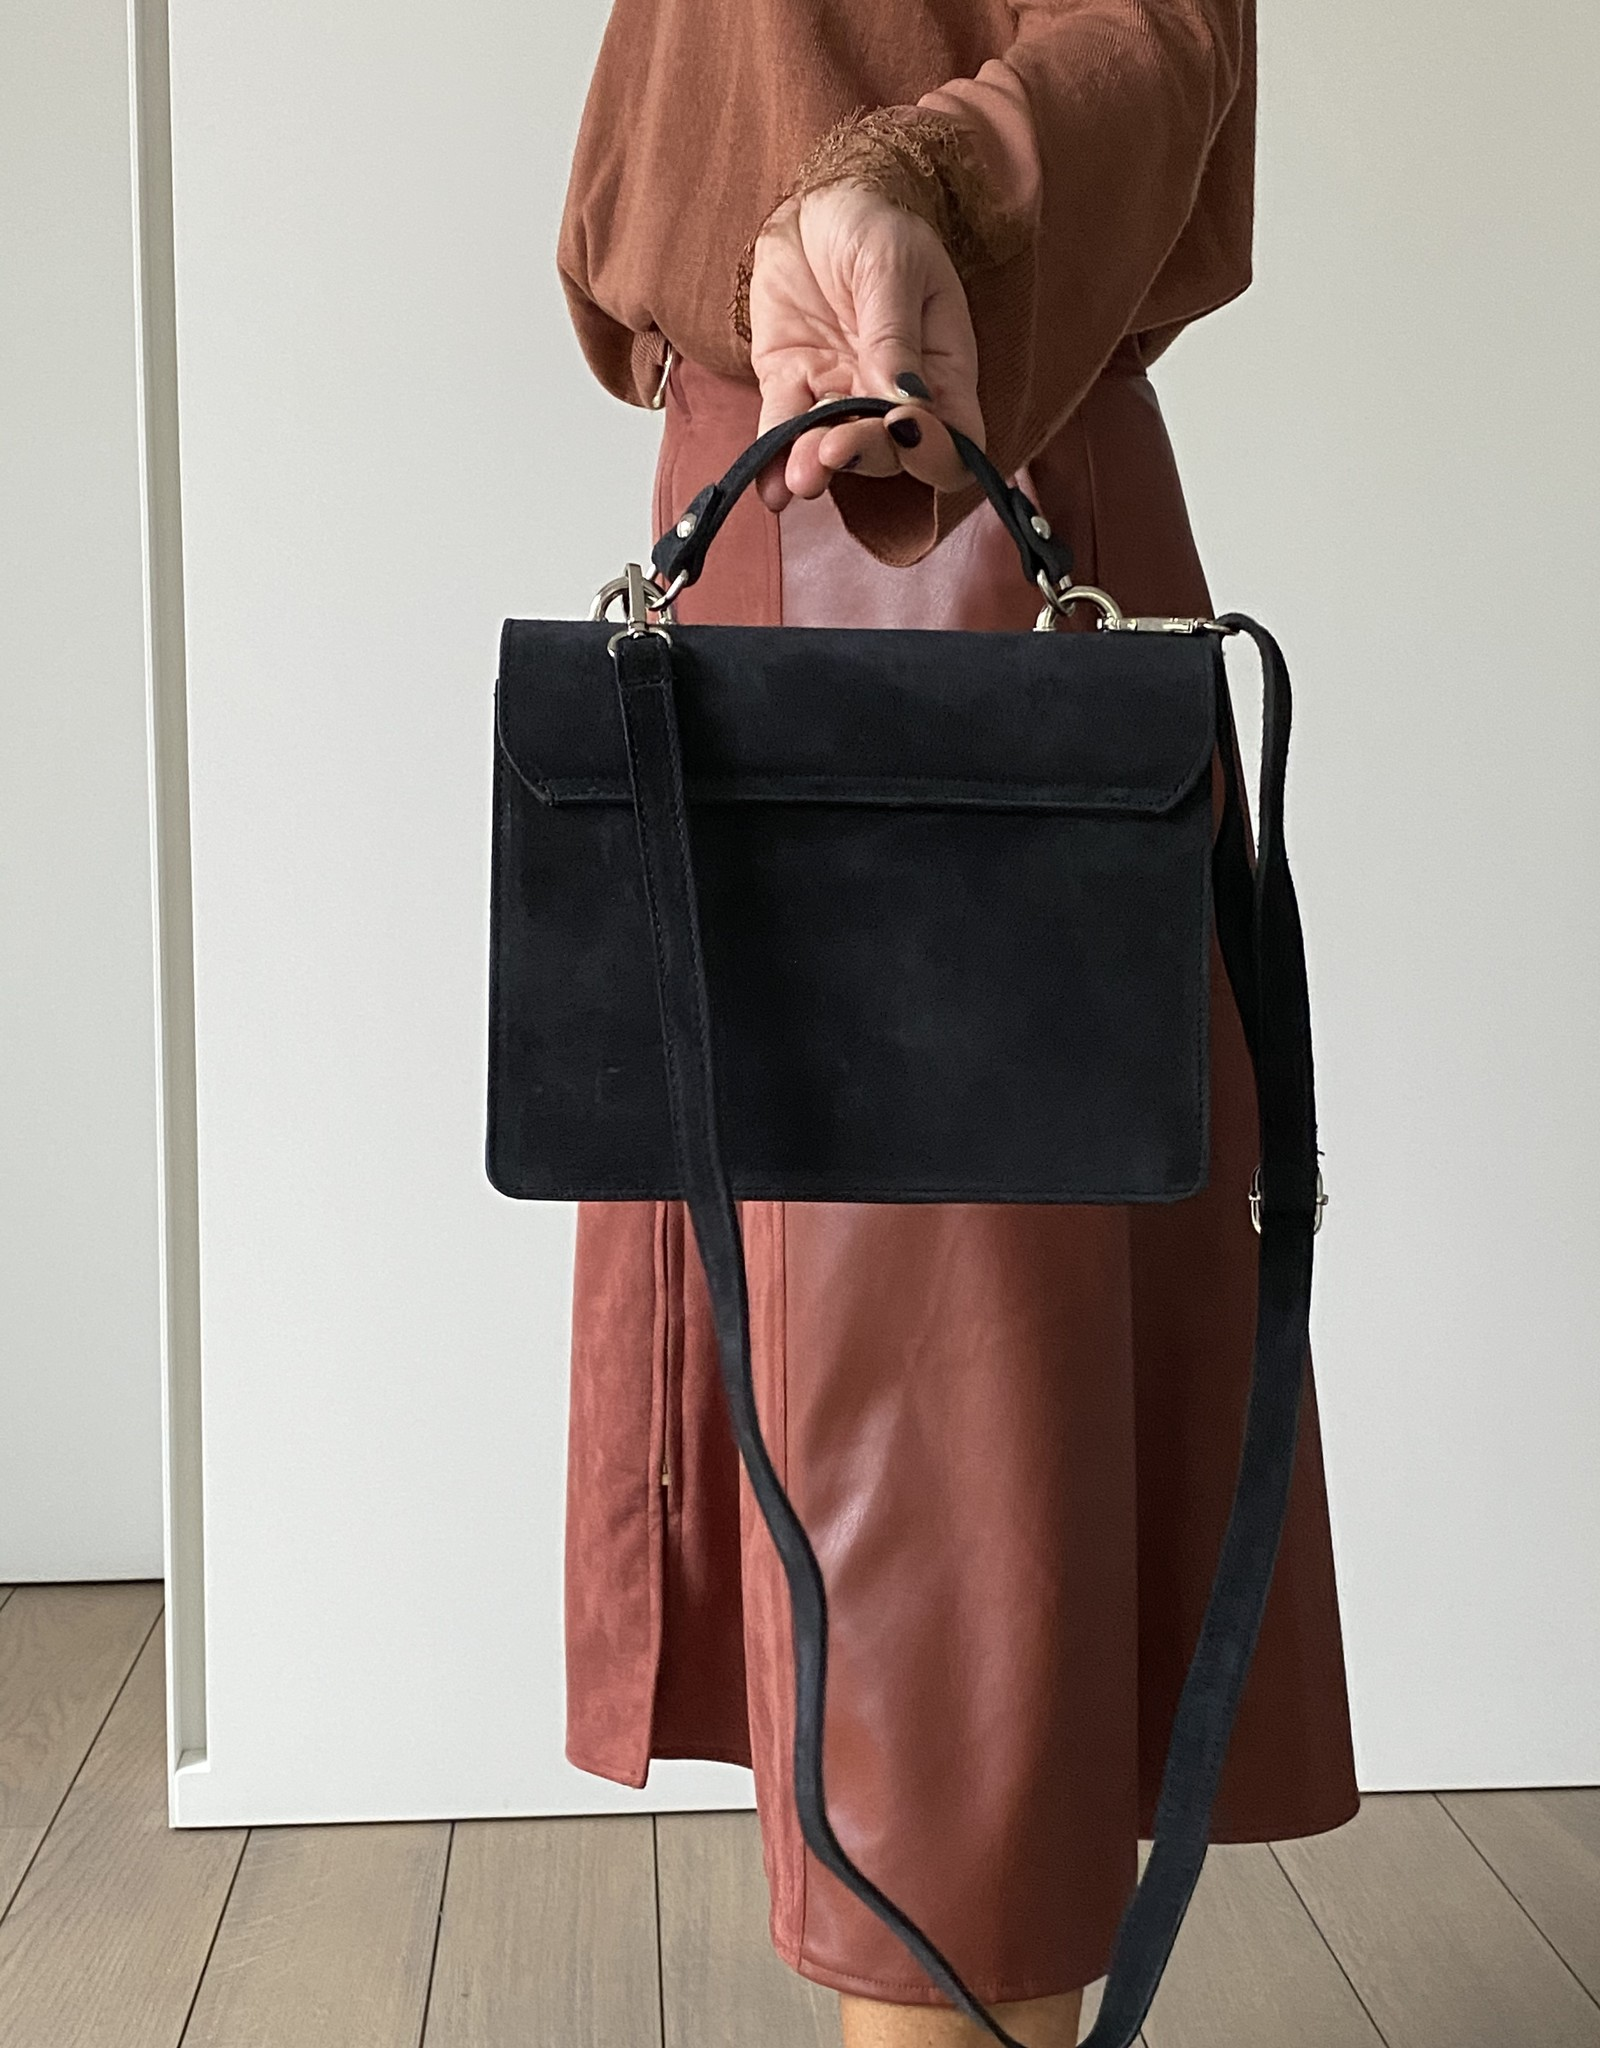 Black buckskin bag with handle and long shouderbelt.